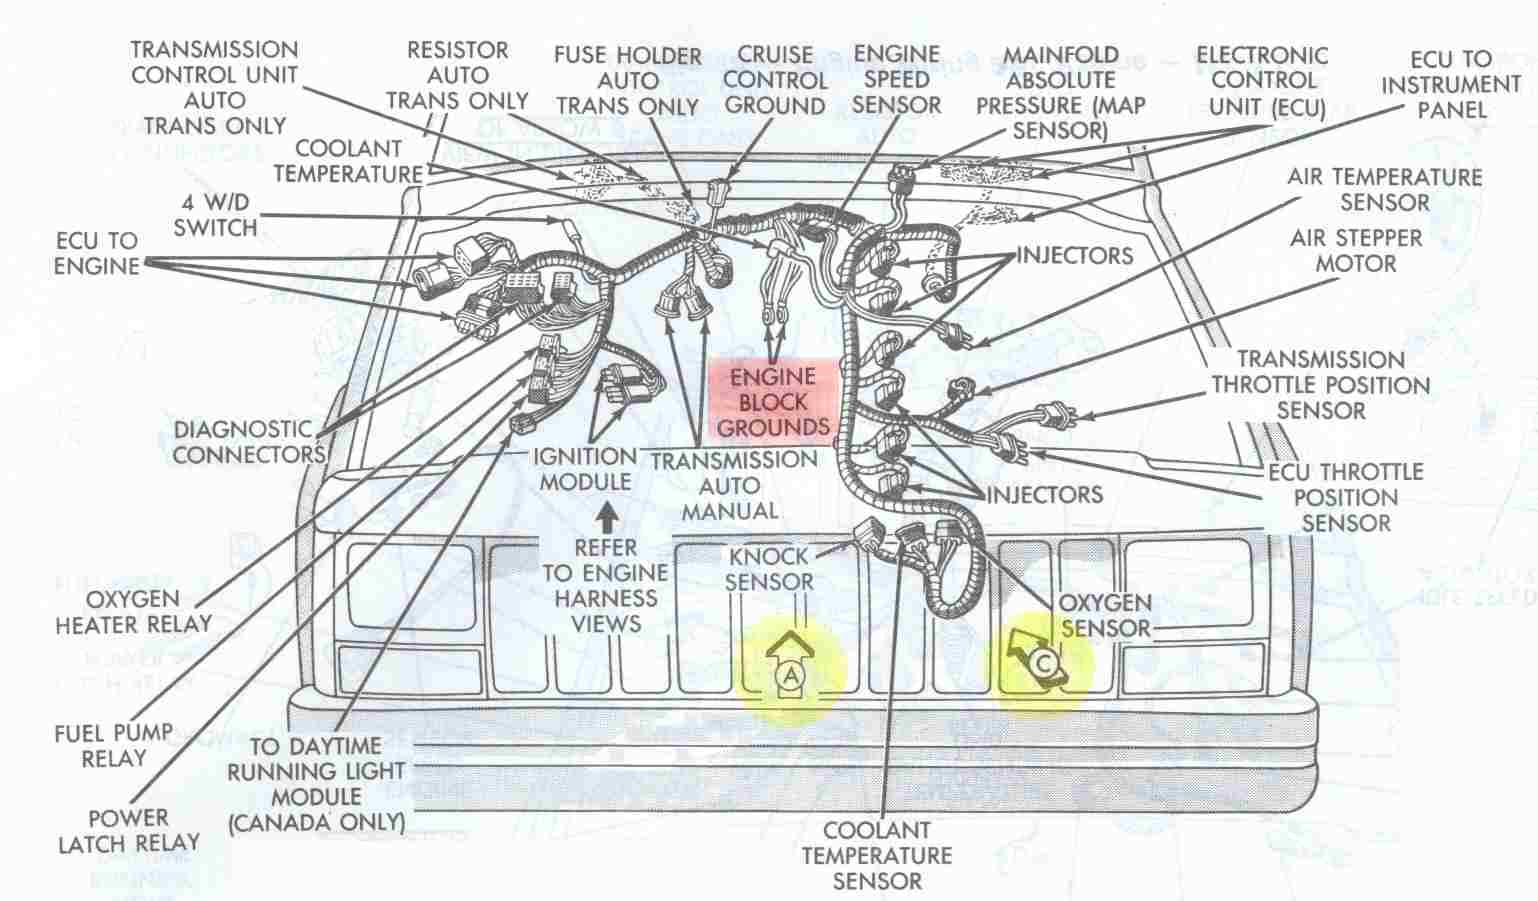 hight resolution of 5 0 ho wiring harness 7 9 stromoeko de u2022chevy 4 8 vortec engine diagram